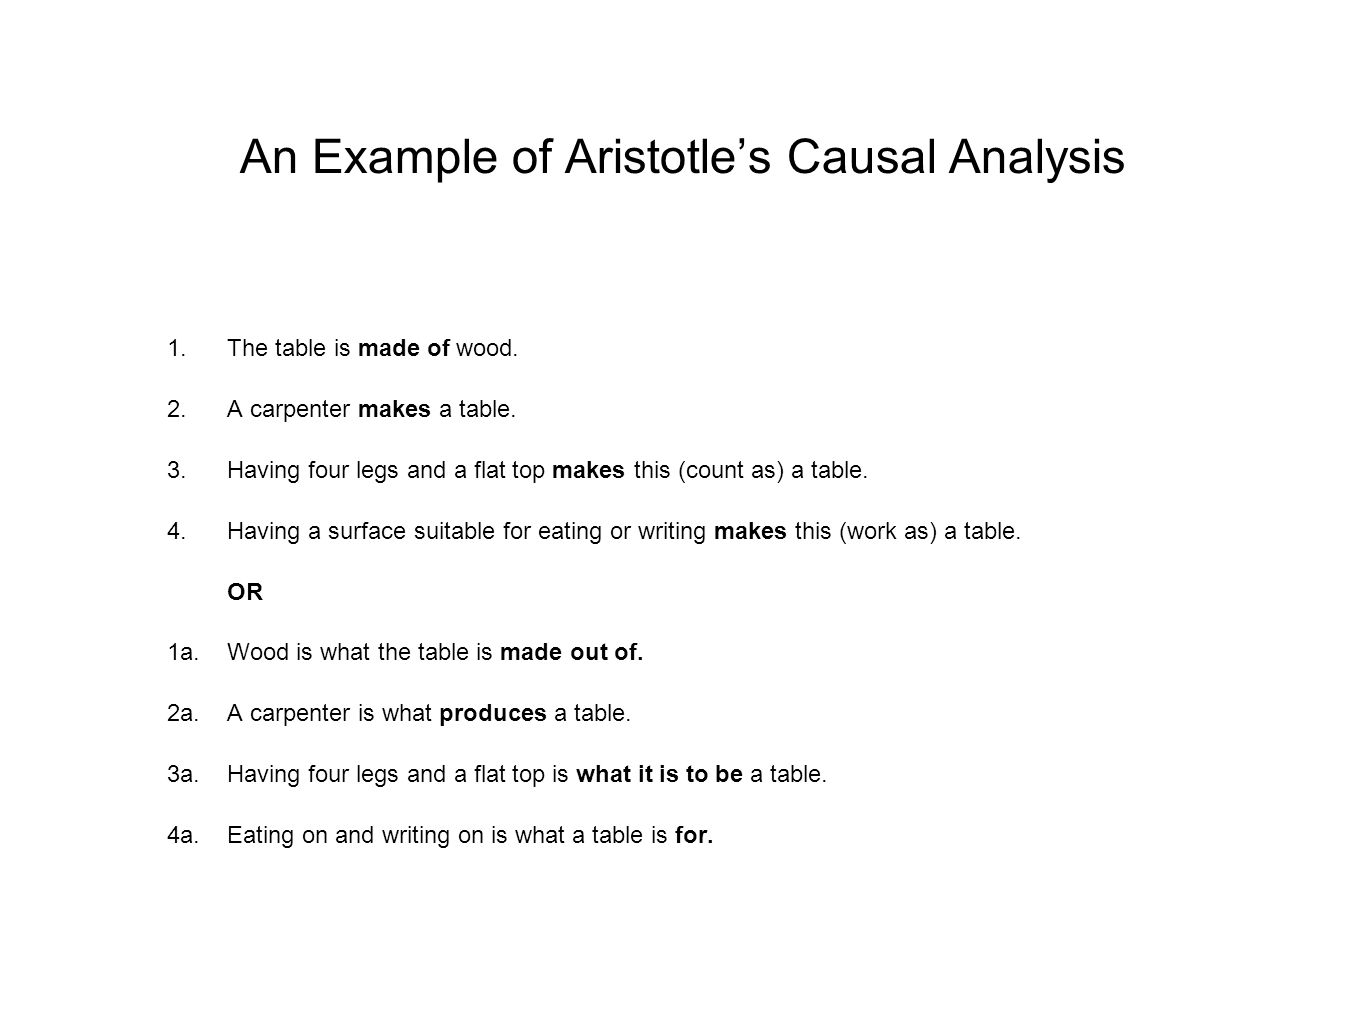 An Example of Aristotle's Causal Analysis 1.The table is made of wood. 2.A carpenter makes a table. 3.Having four legs and a flat top makes this (coun